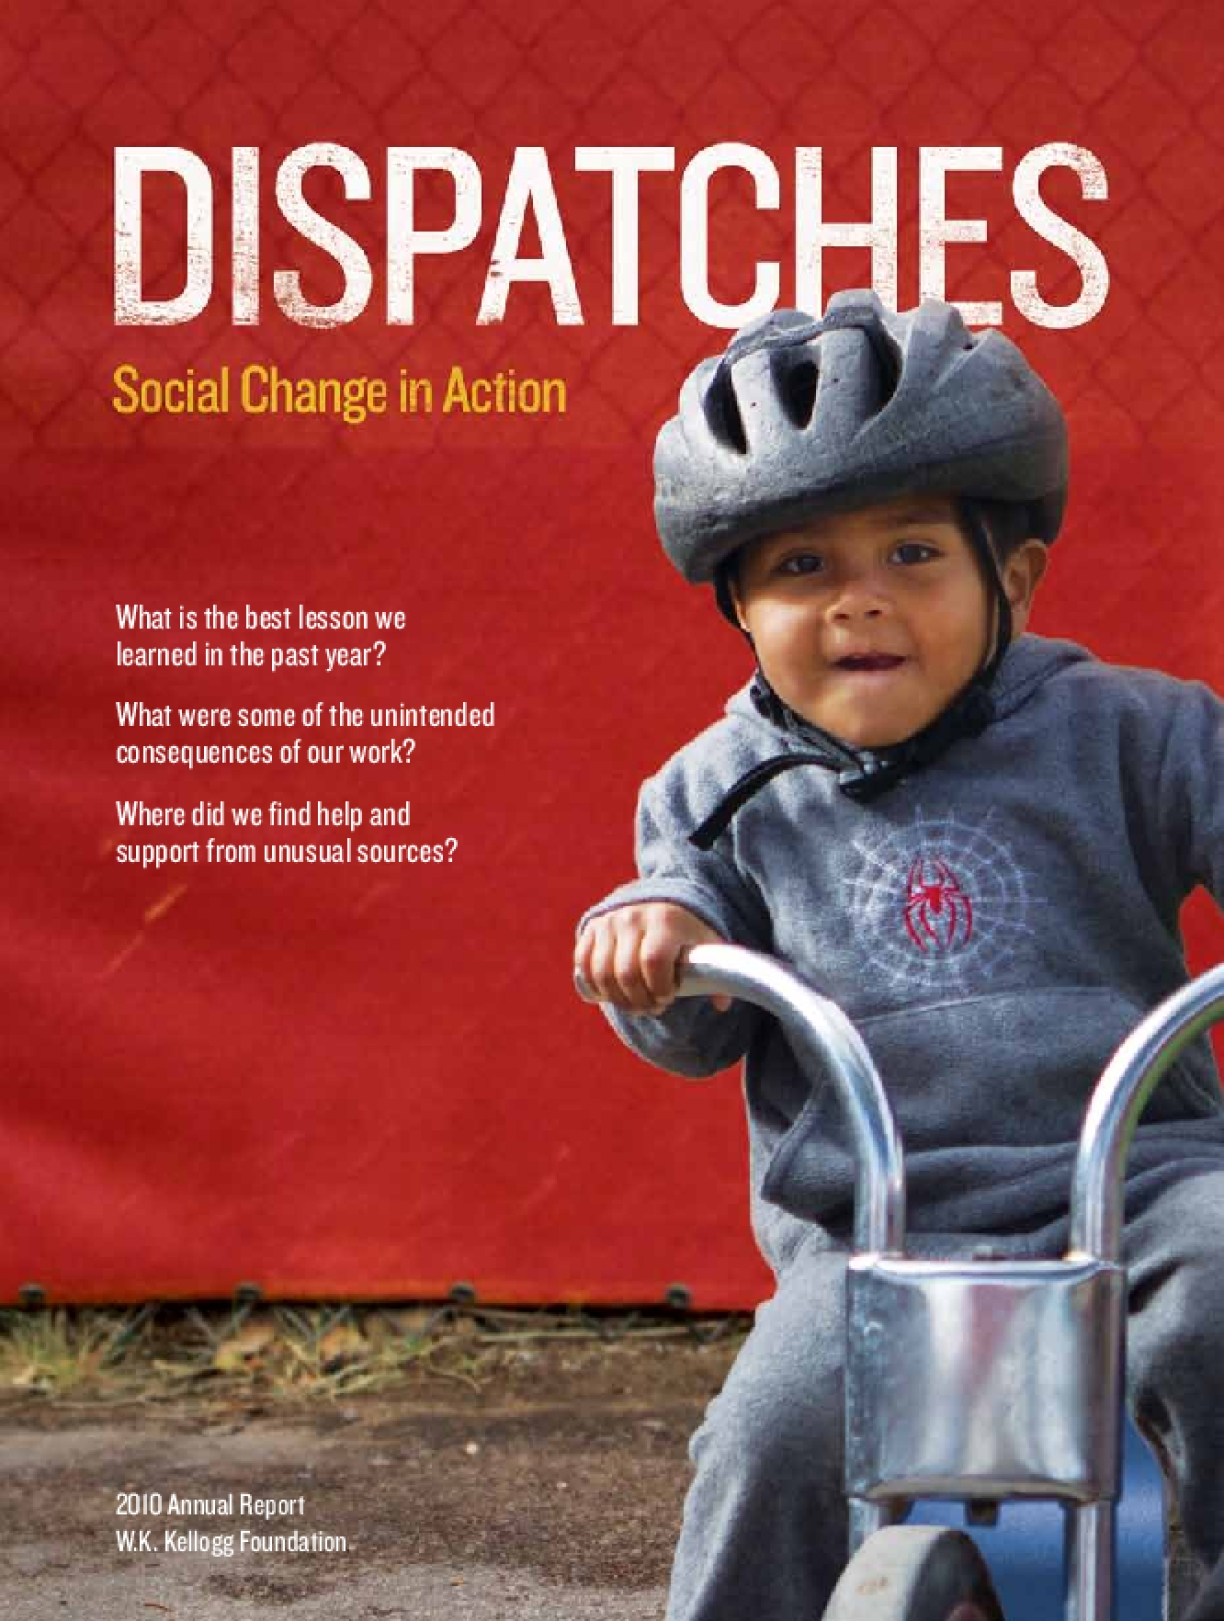 Dispatches: Social Change in Action, 2010 W.K. Kellogg Foundation Annual Report